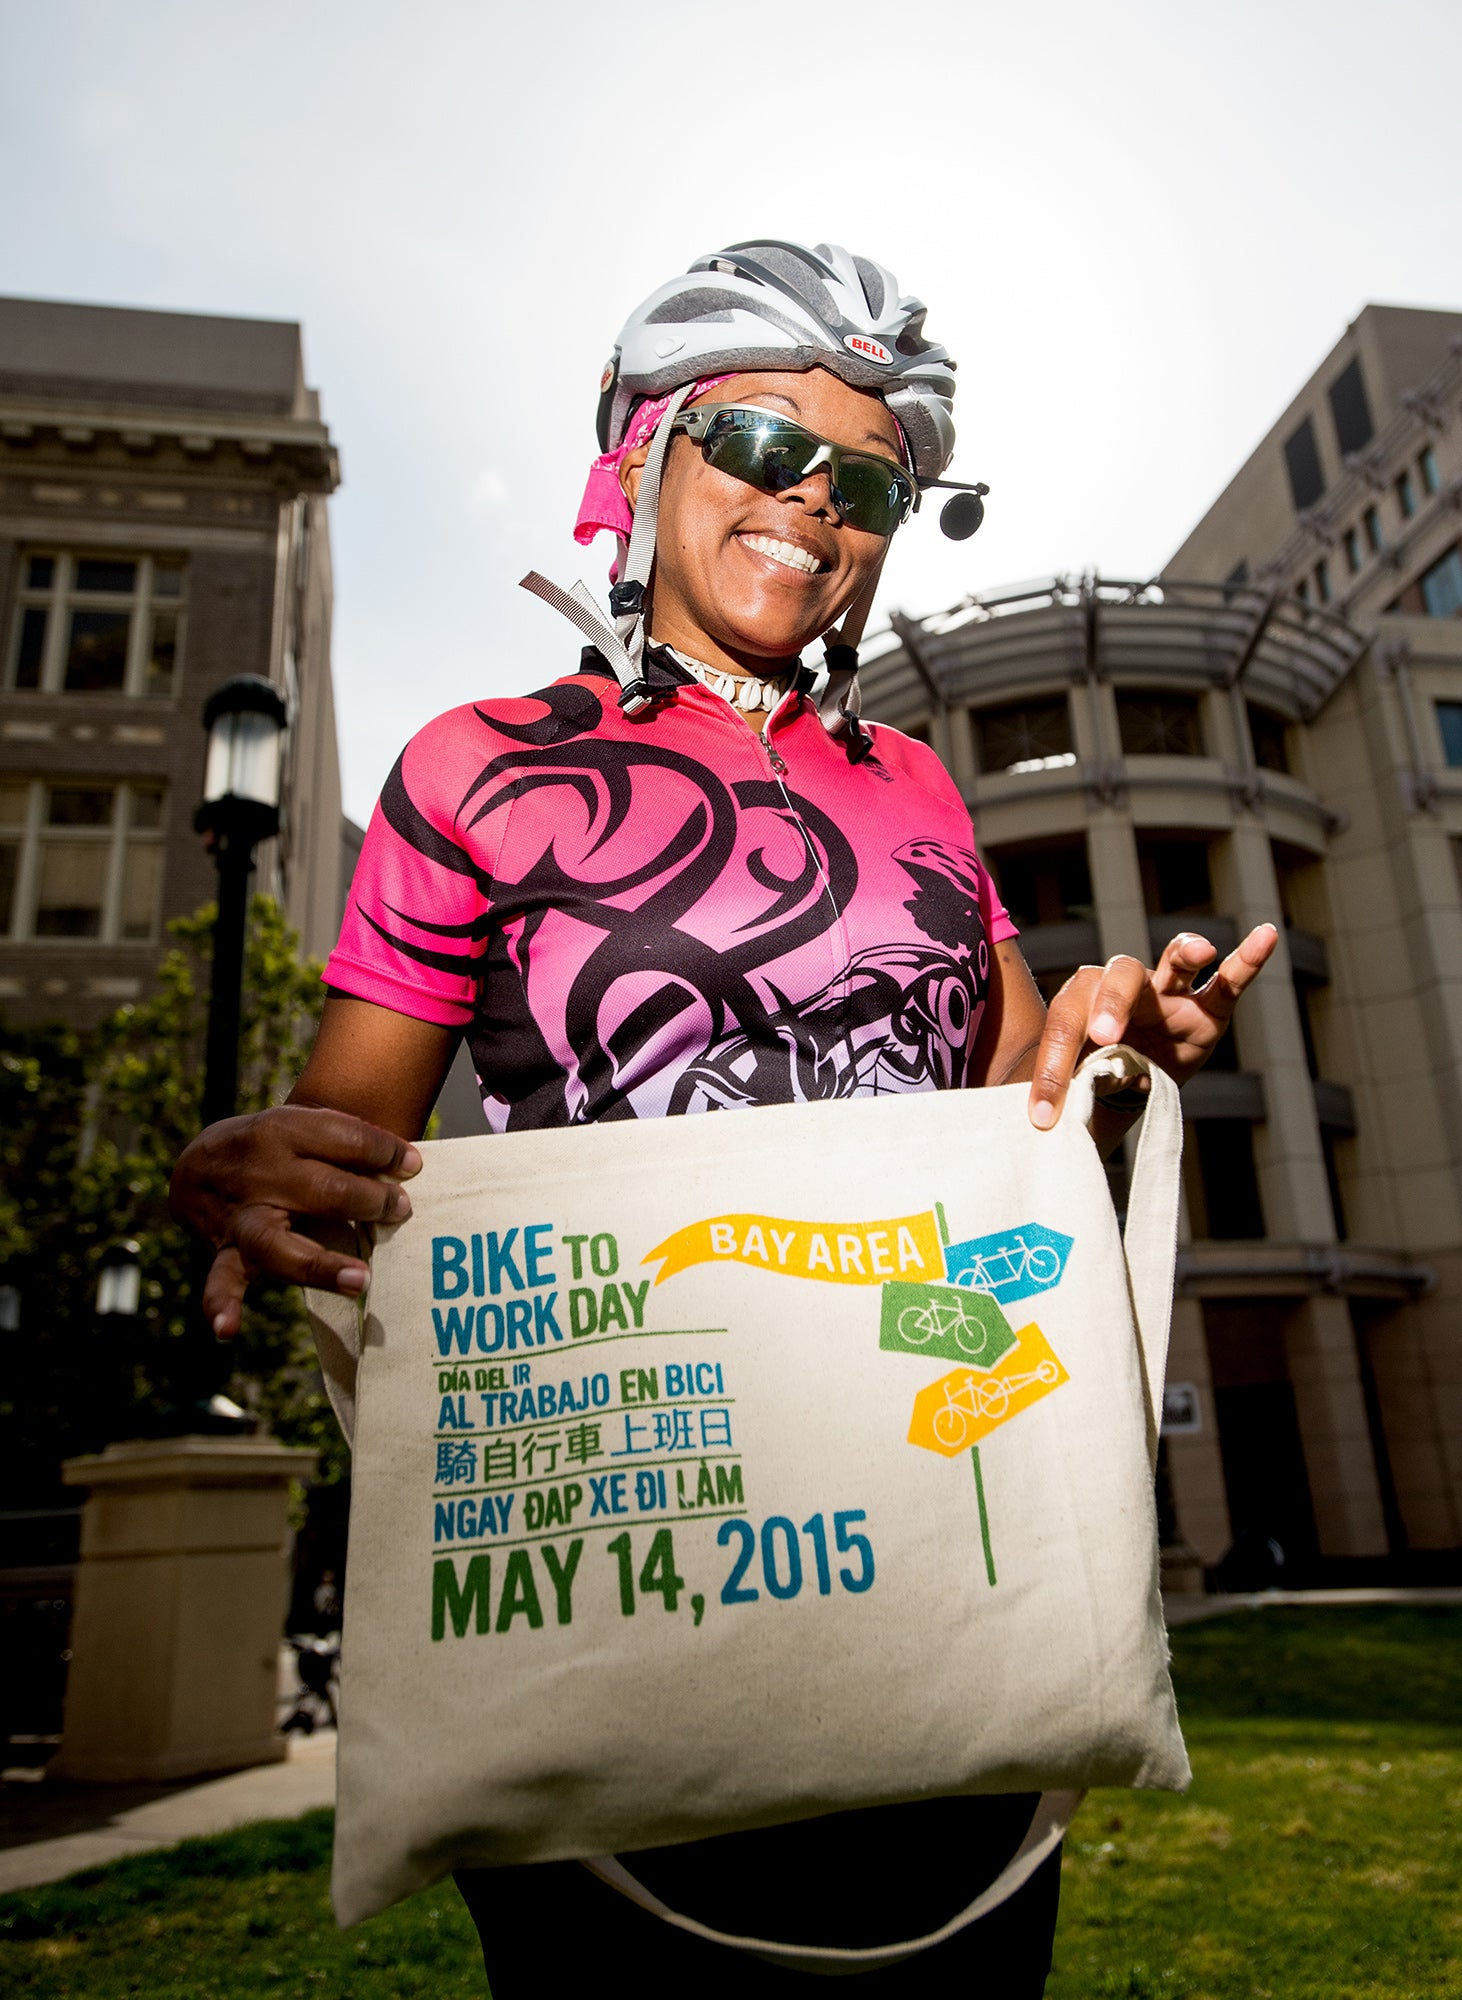 Oakland cyclist with official tote bag